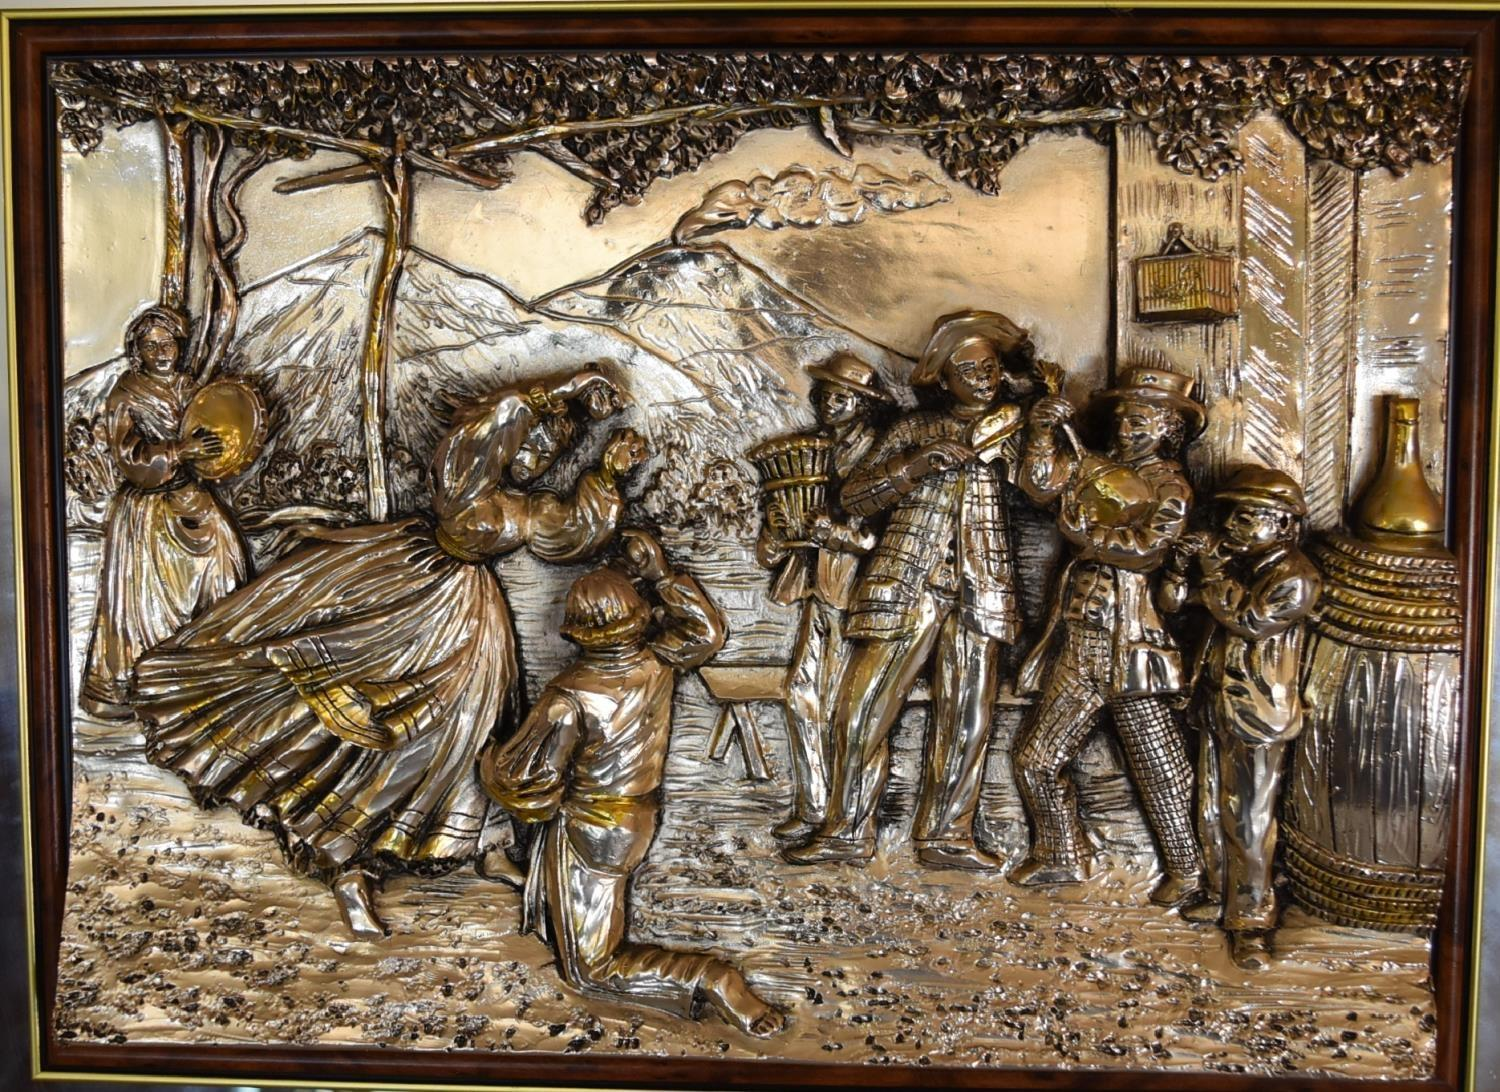 Lot 7 - A framed mirror with applied silver moulded tableau depicting musicians and dancing. 72cm x 60cm.